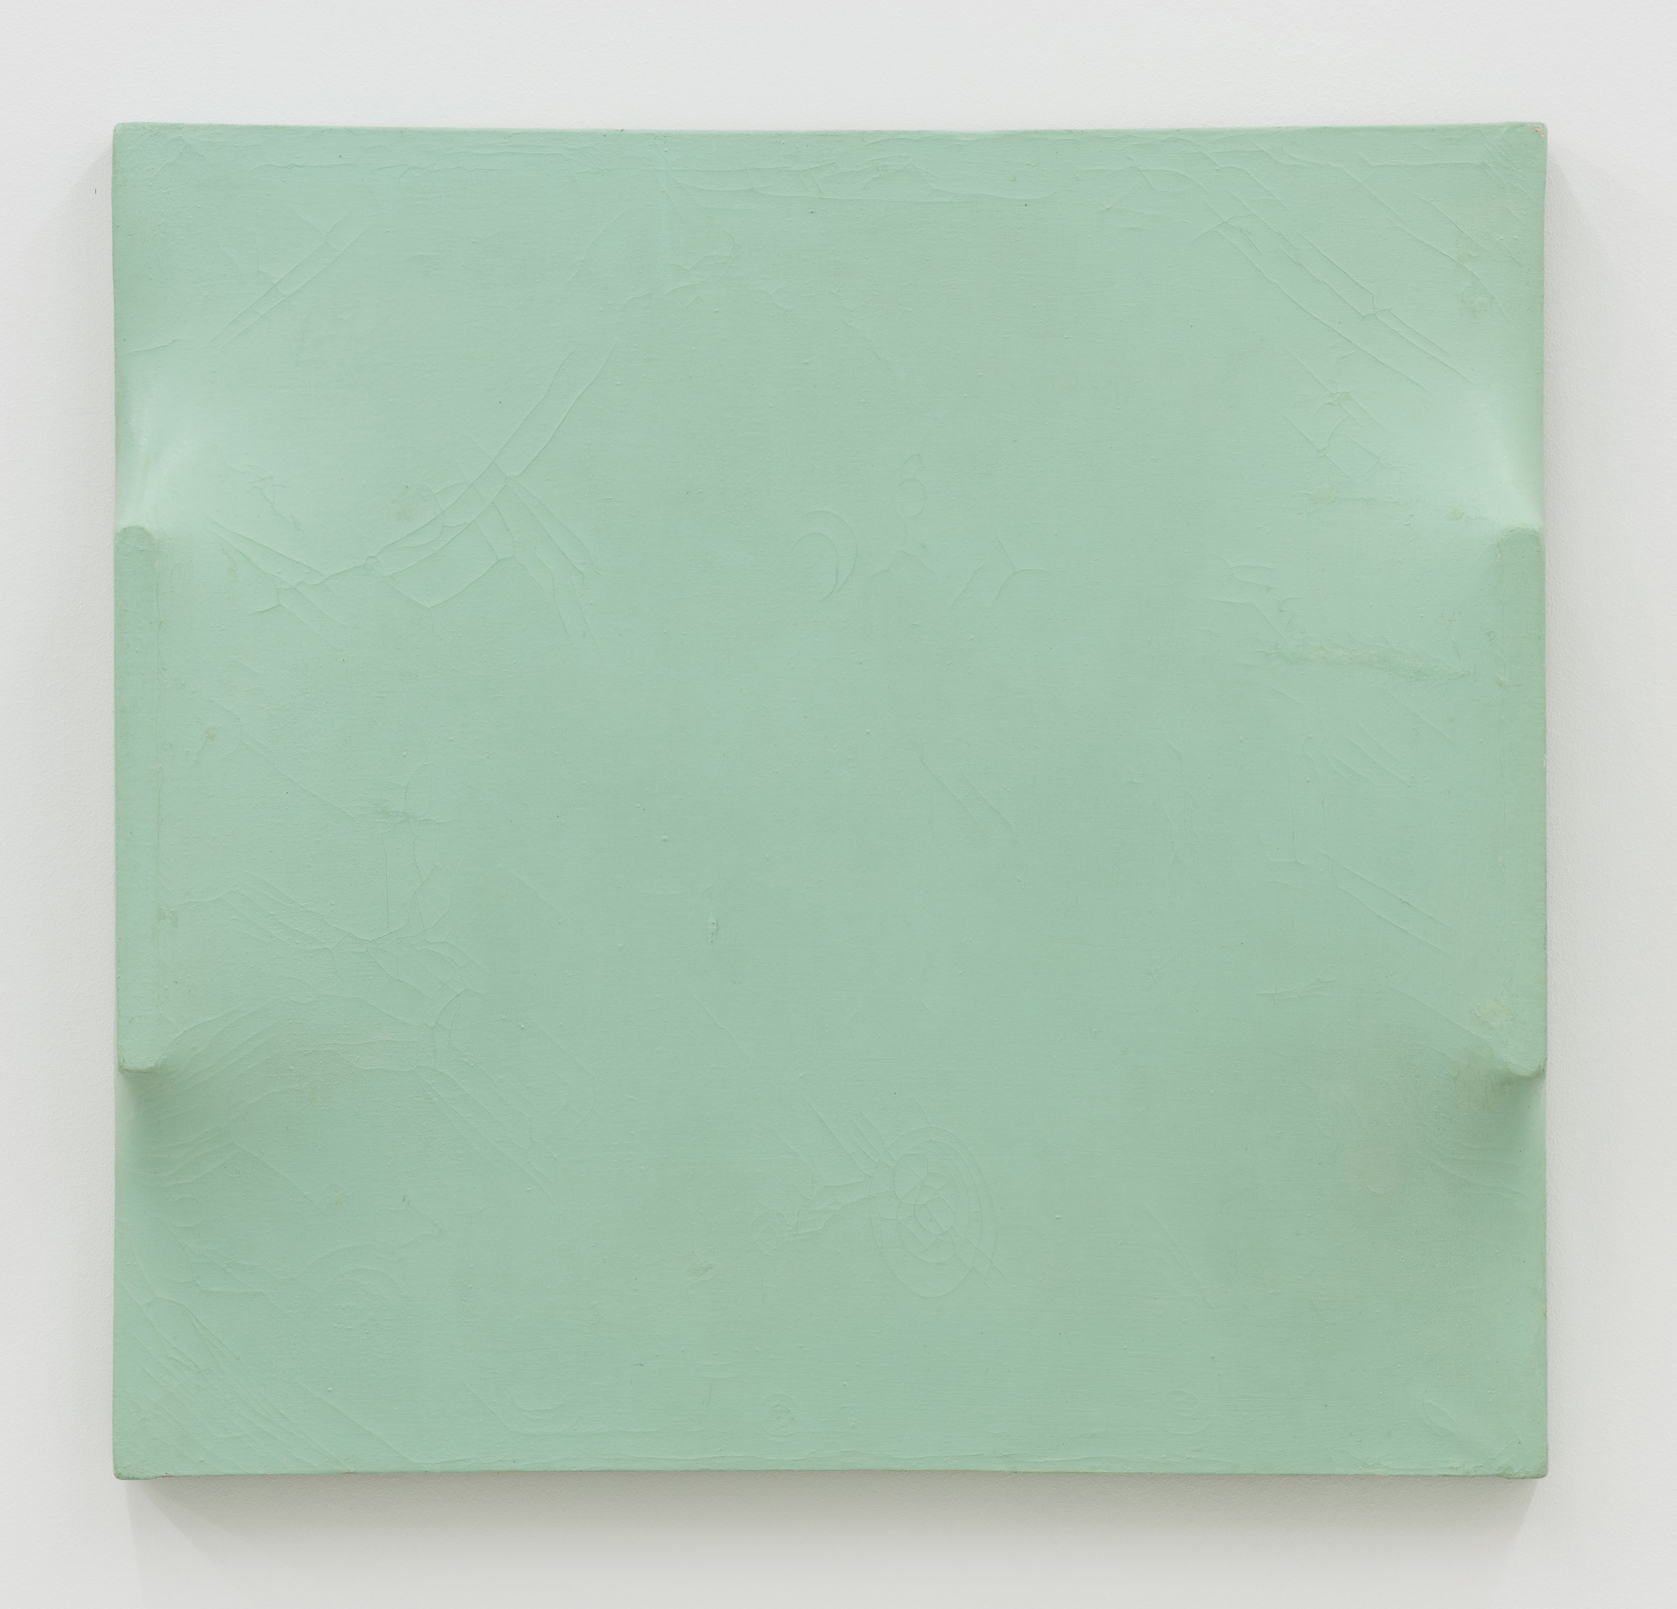 Ferenc Ficzek, Untitled, 1972, oil on fibreboard and formed canvas, 66 x 63 x 8,4 cm. Photo: Marcus Schneider